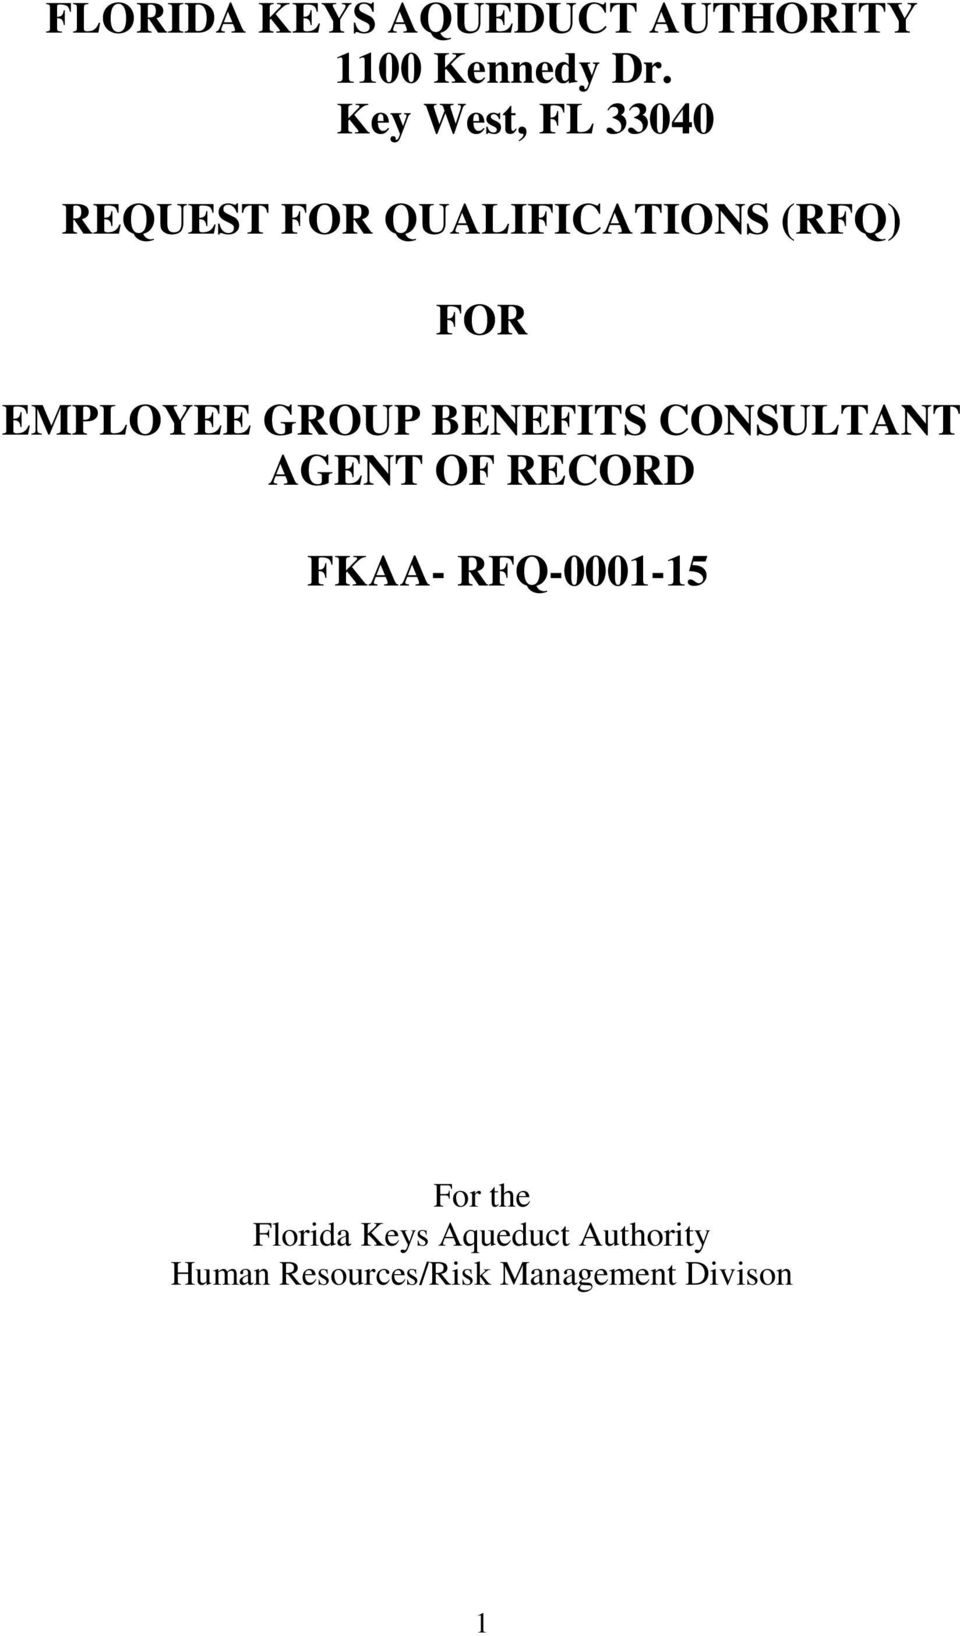 EMPLOYEE GROUP BENEFITS CONSULTANT AGENT OF RECORD FKAA-